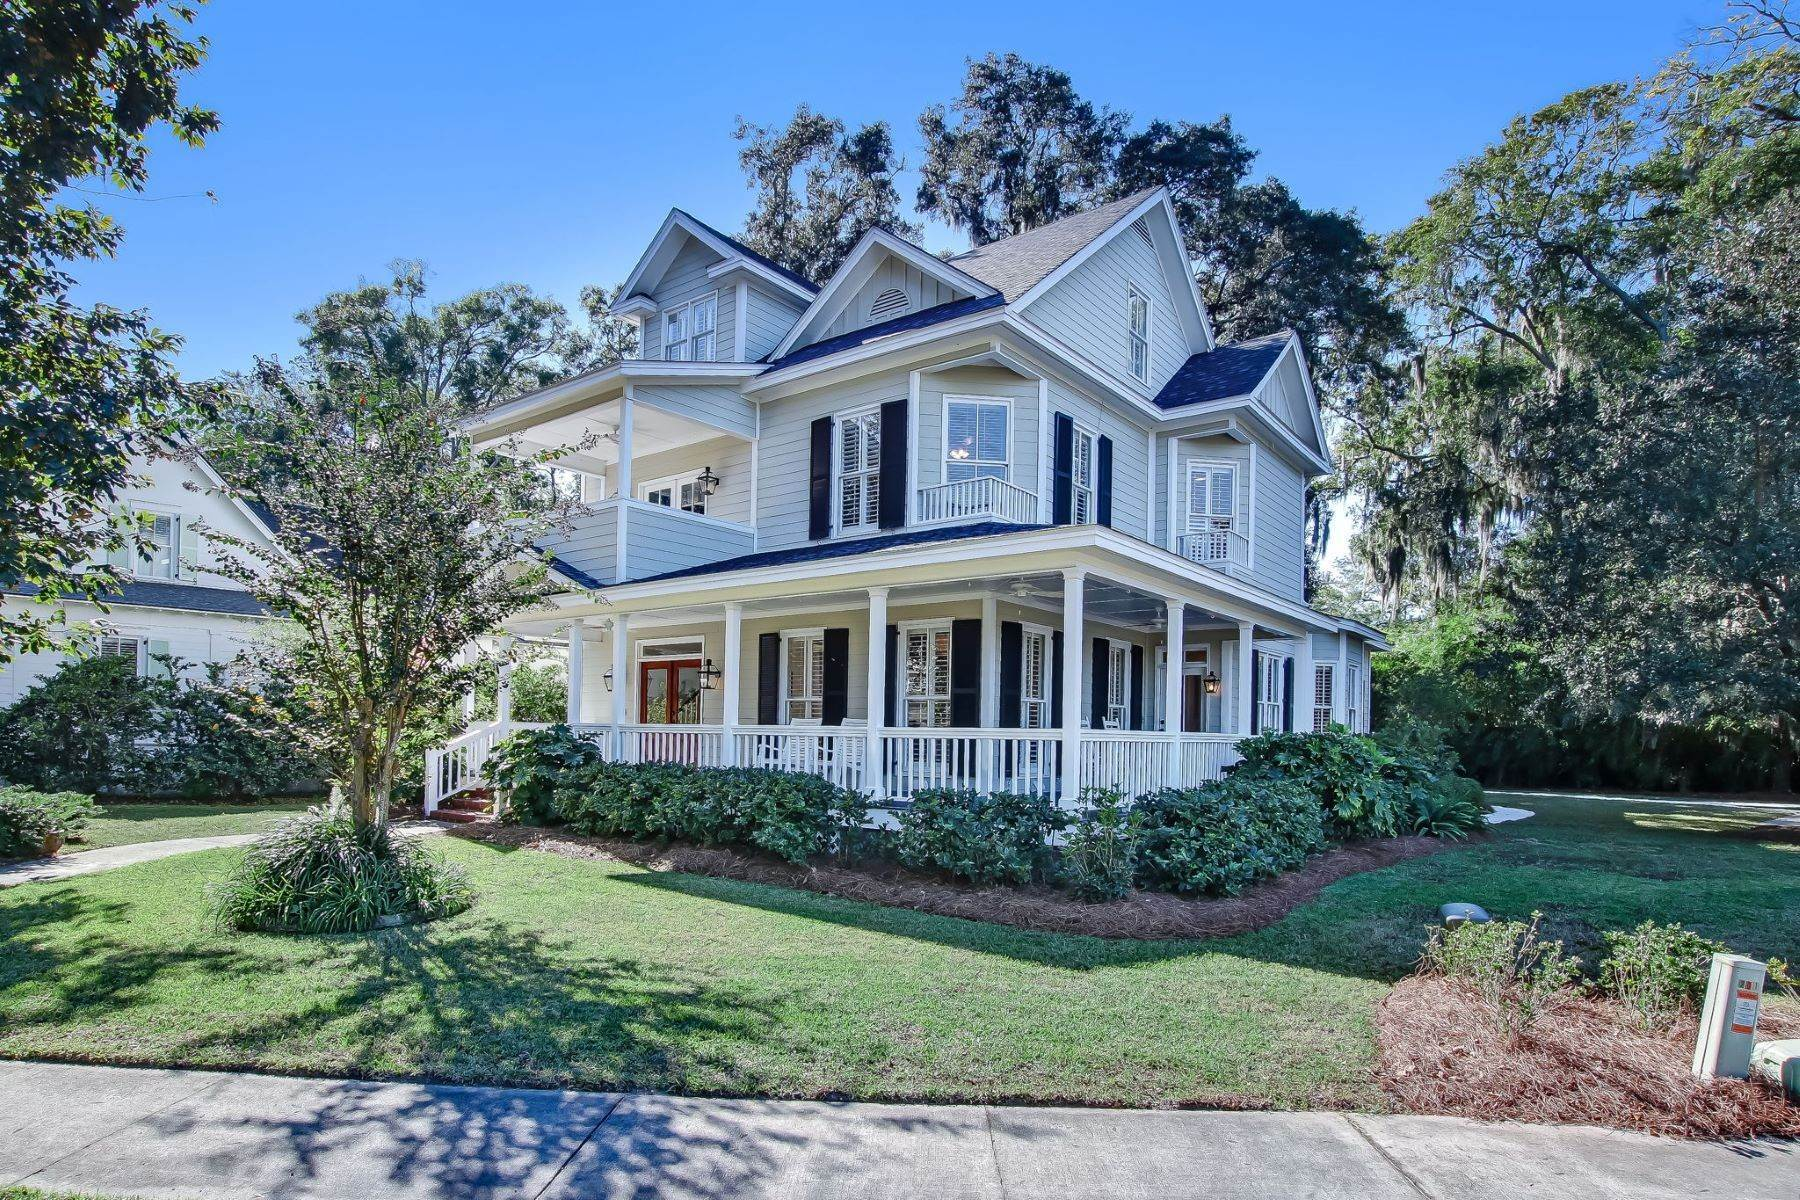 Single Family Homes for Sale at Low Country Home on Double Lot in Gated Community 203 John Wesley Way Savannah, Georgia 31404 United States